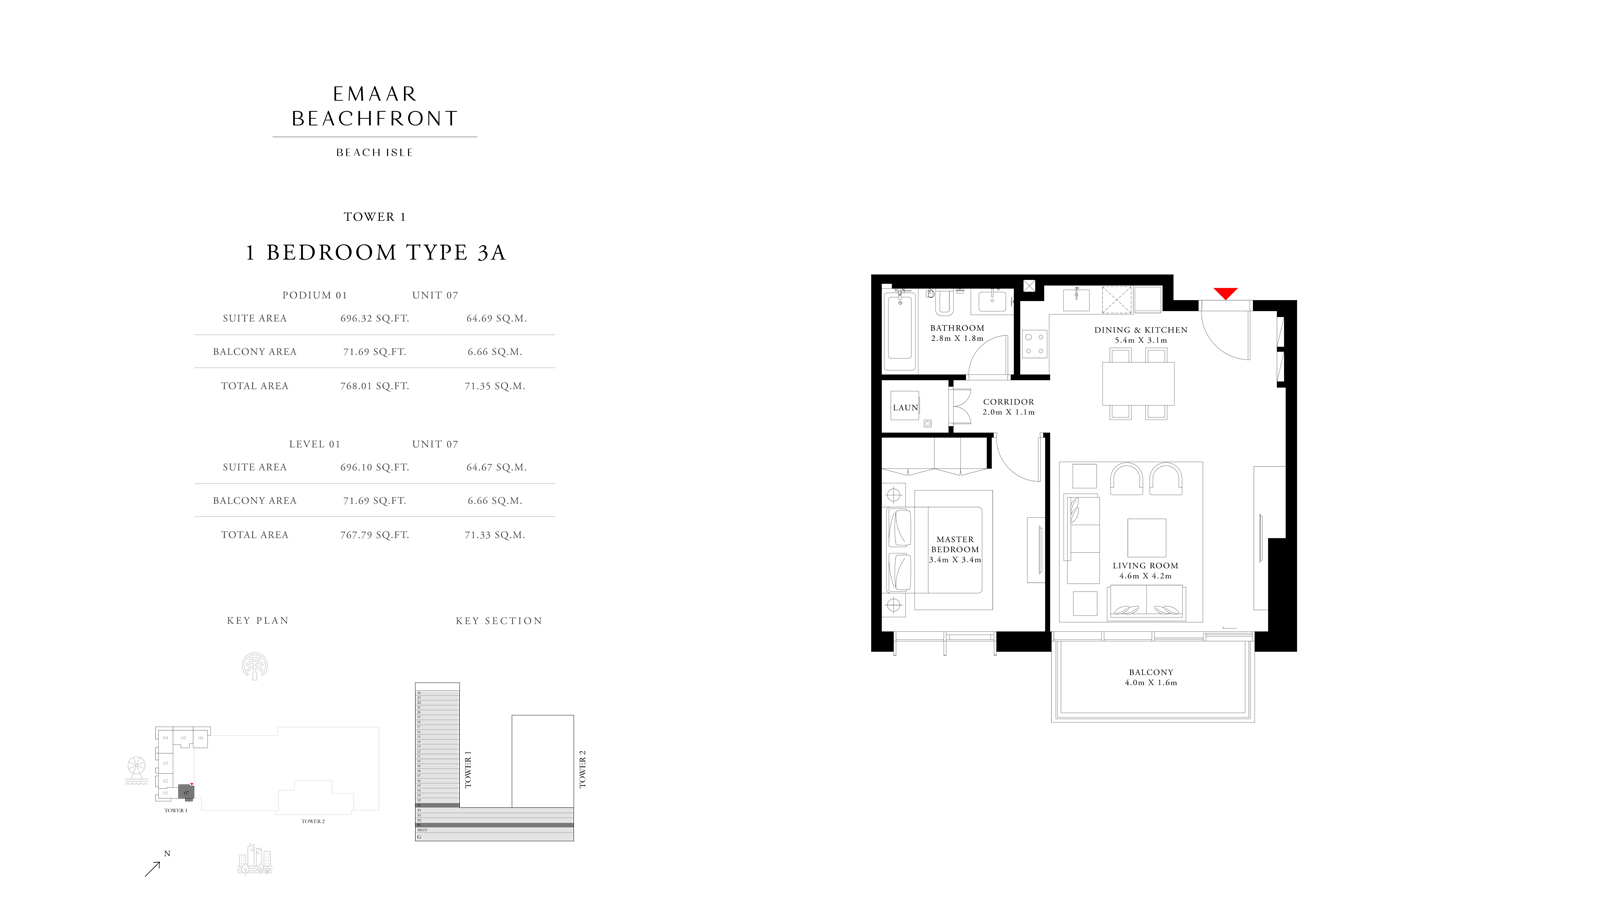 1 Bedroom Type 3A Tower 1, Size 768    sq. ft.